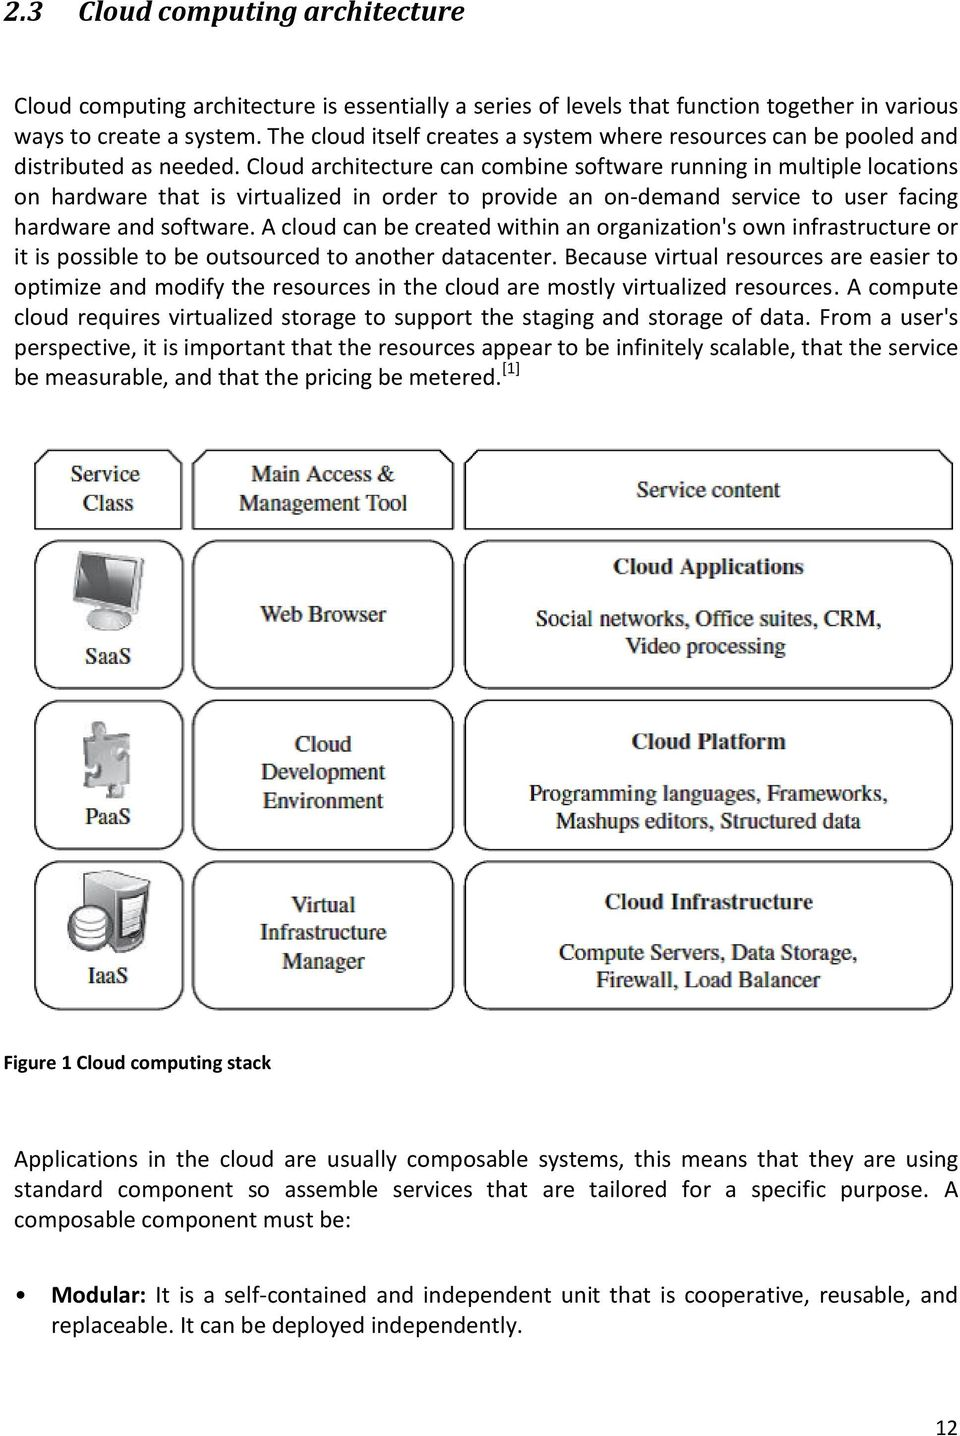 Cloud architecture can combine software running in multiple locations on hardware that is virtualized in order to provide an on-demand service to user facing hardware and software.